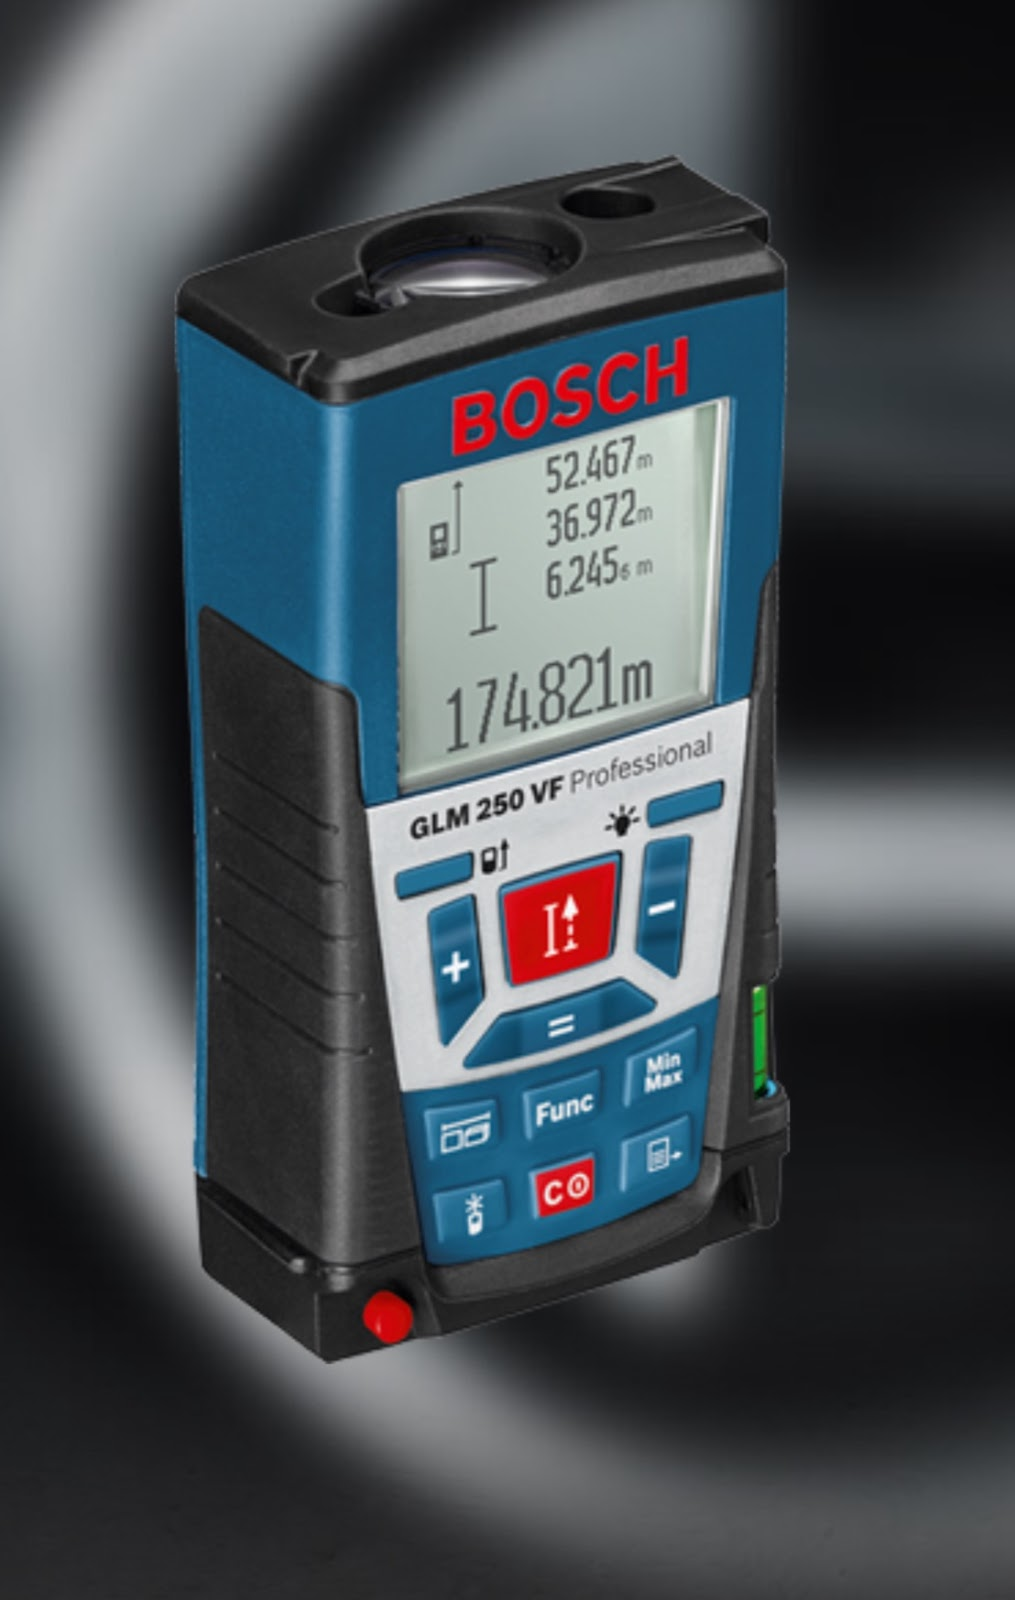 bosch glm 40 how to change units